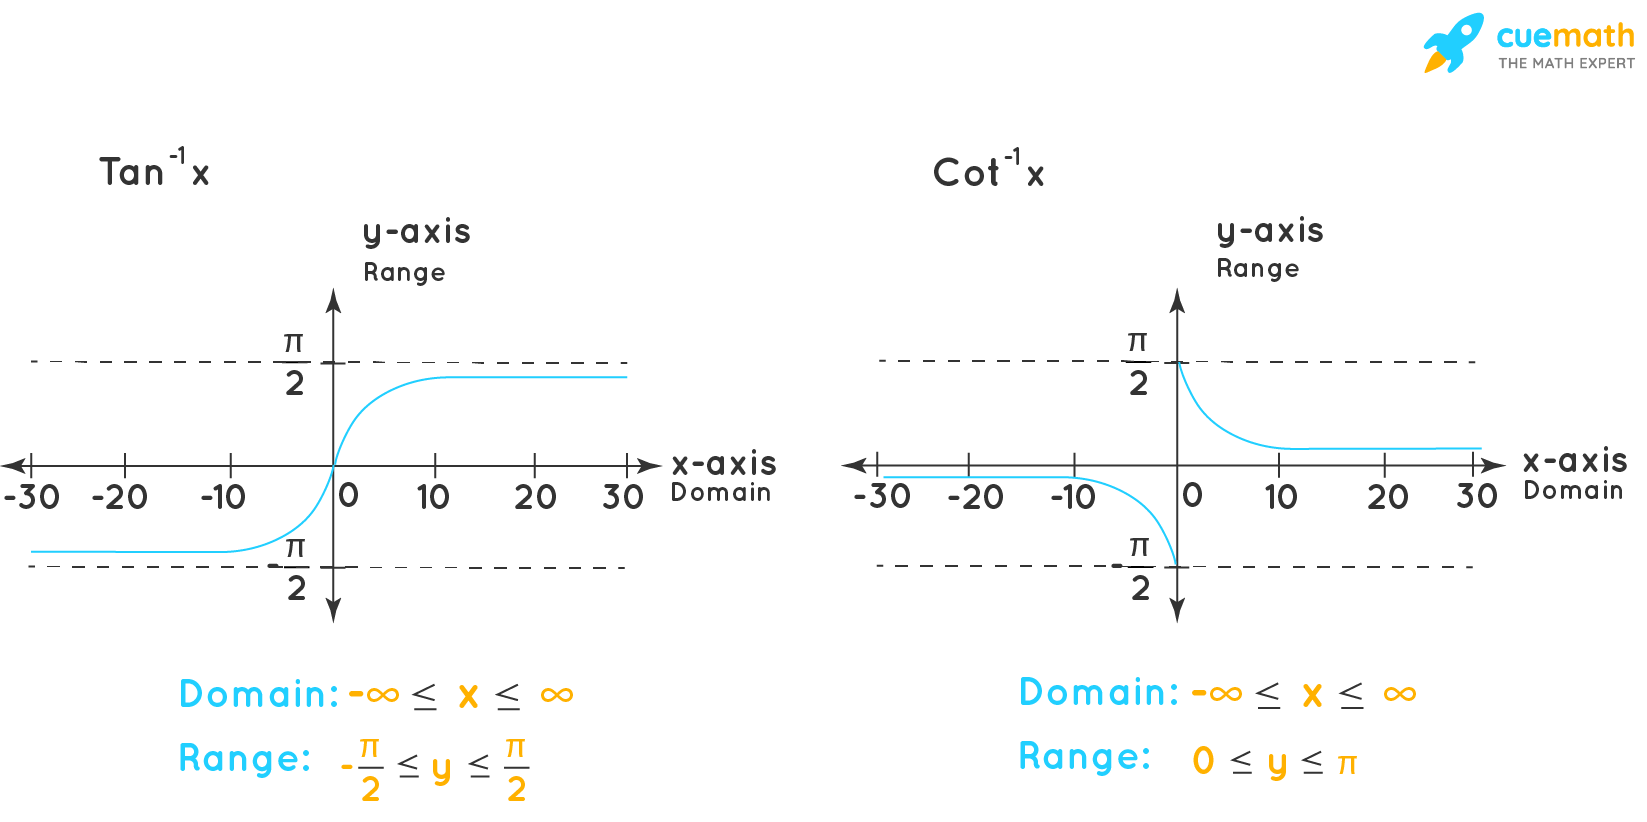 Graph of Tan-1x and Cot-1x